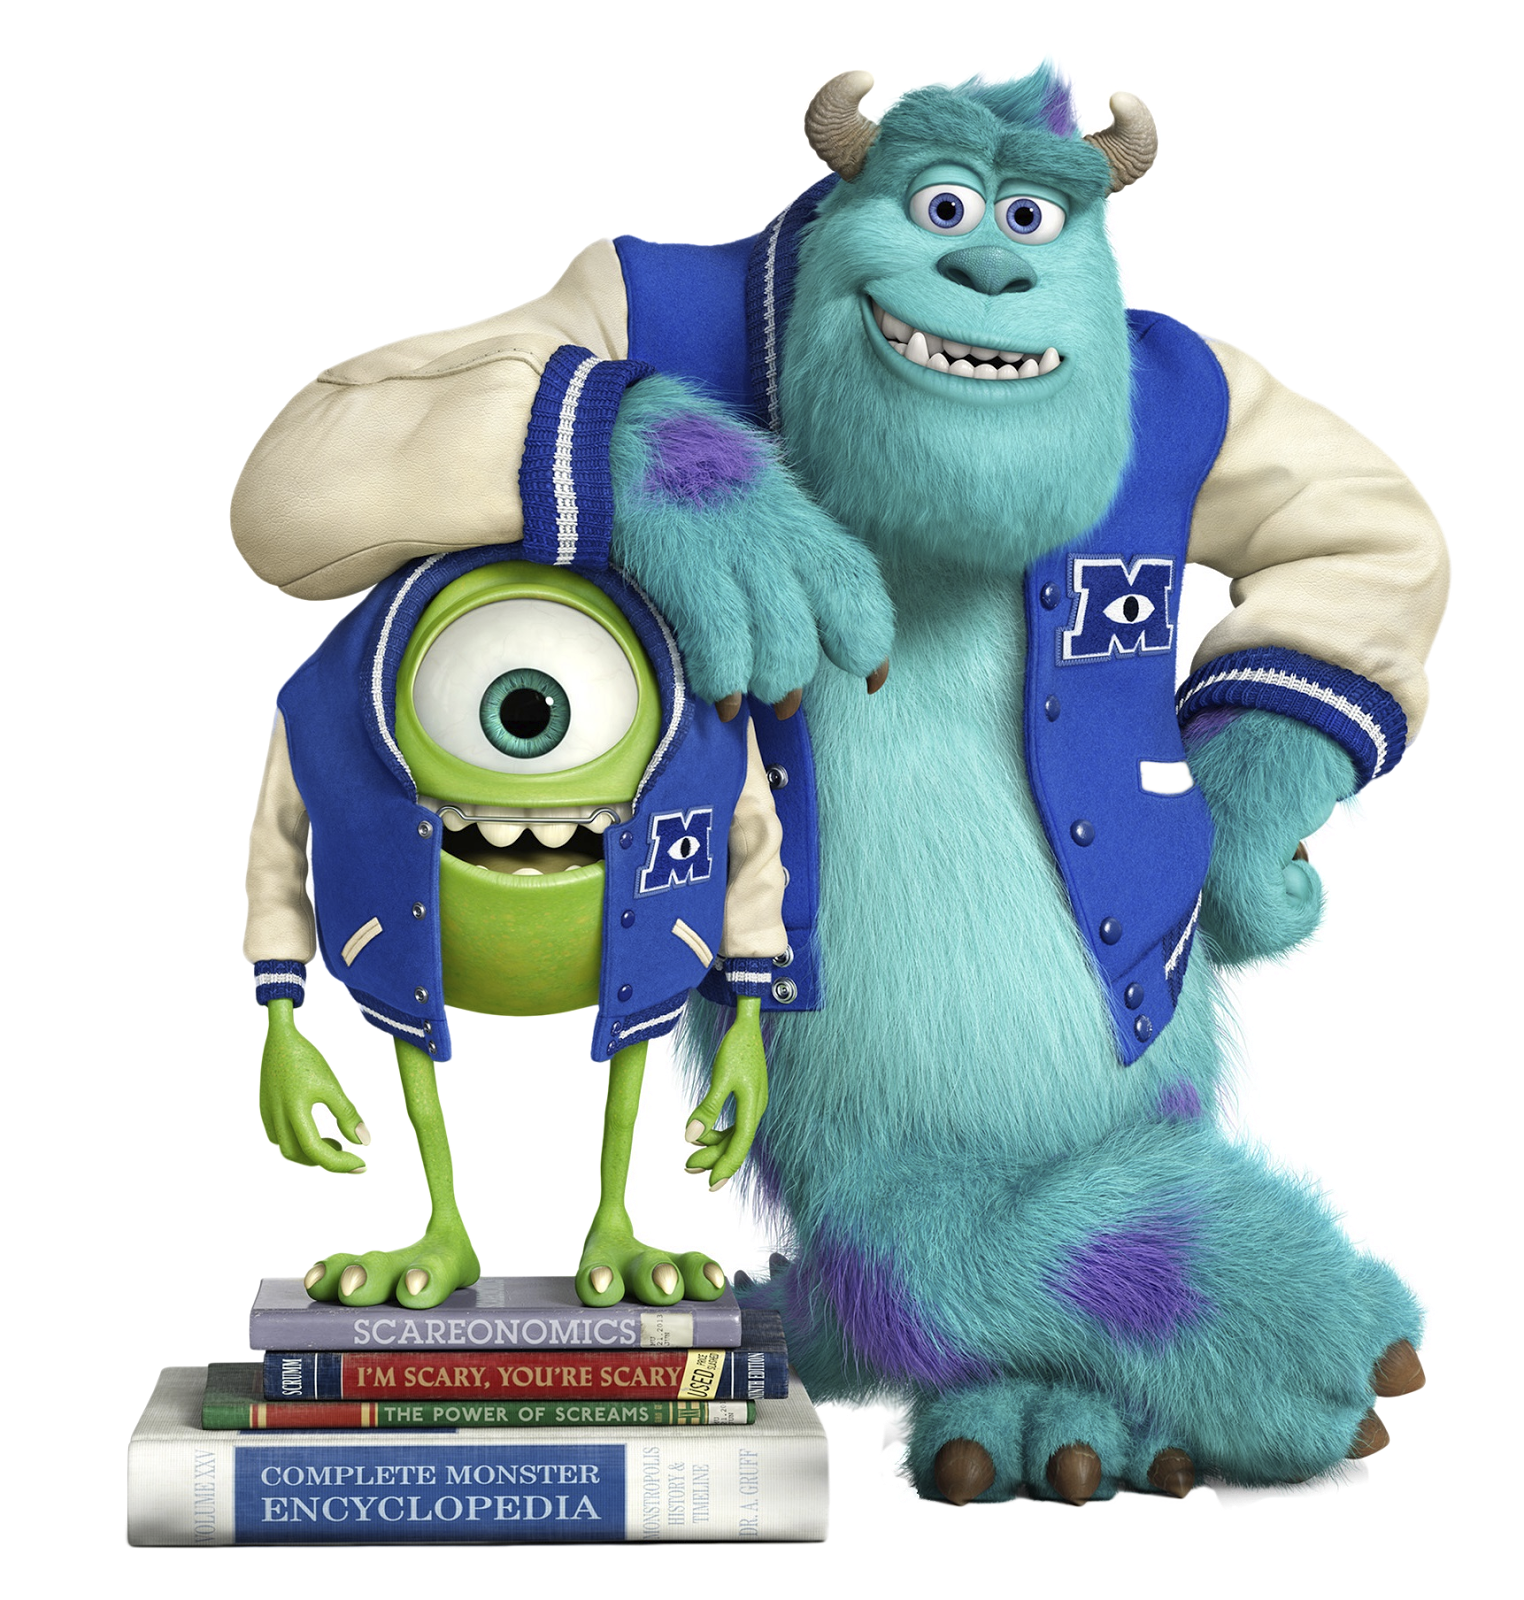 Download PNG image - Monsters University Clipart 592